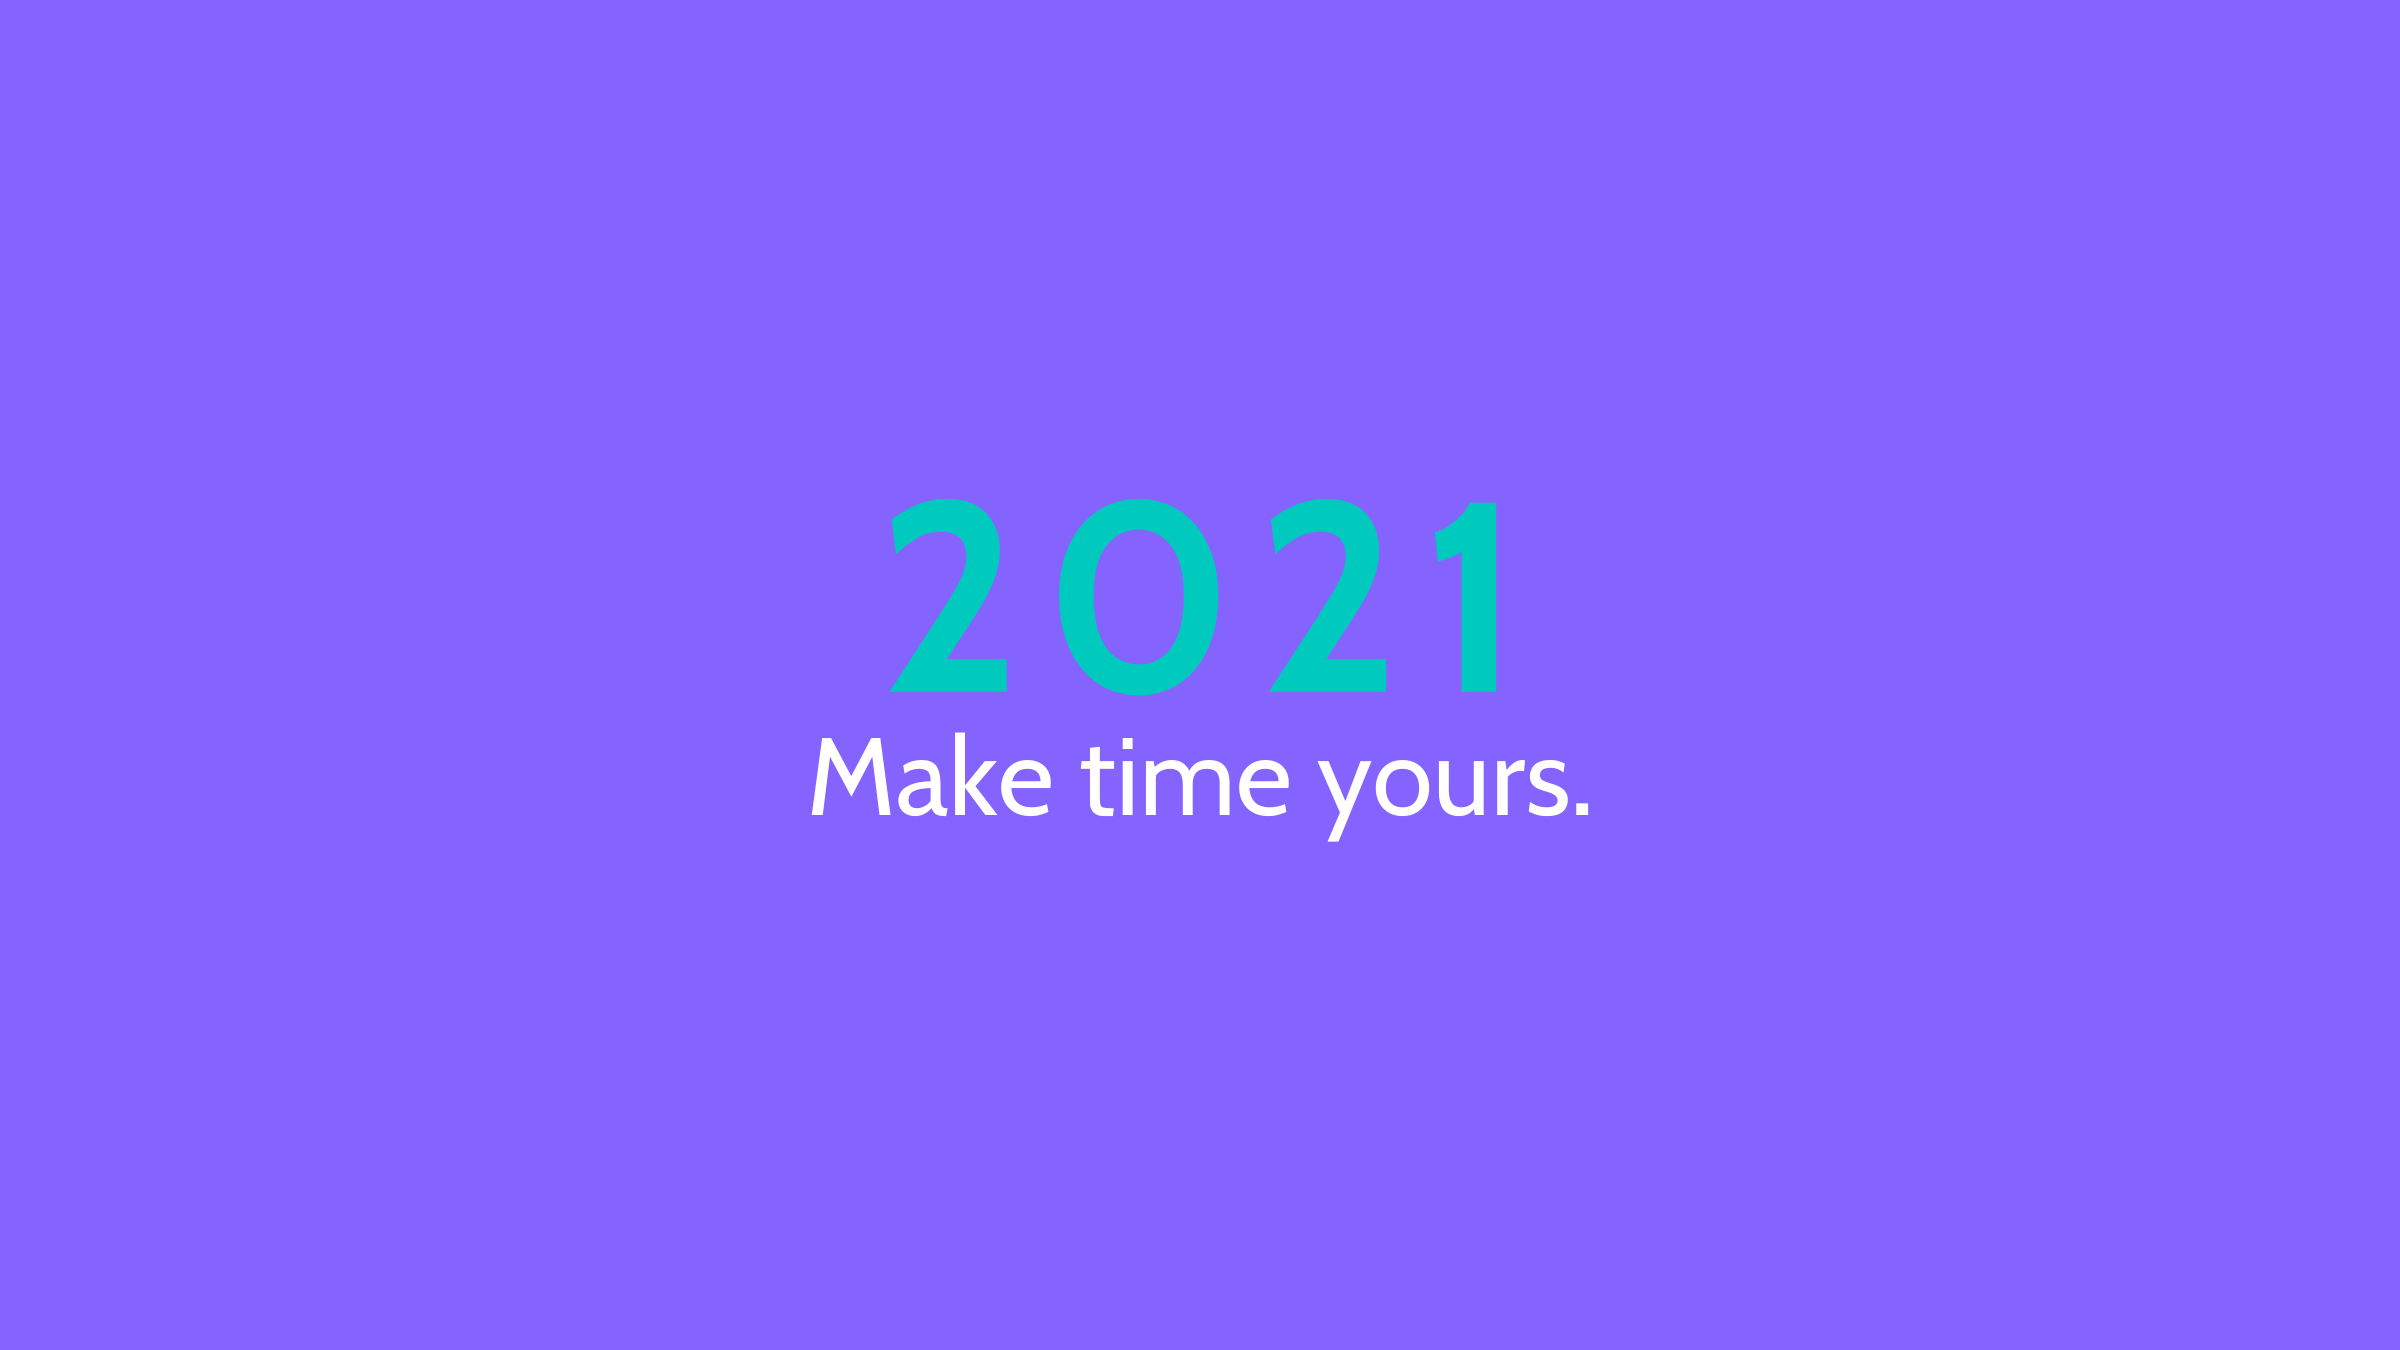 Guidance on how to unlock your time and be more productive in 2021.